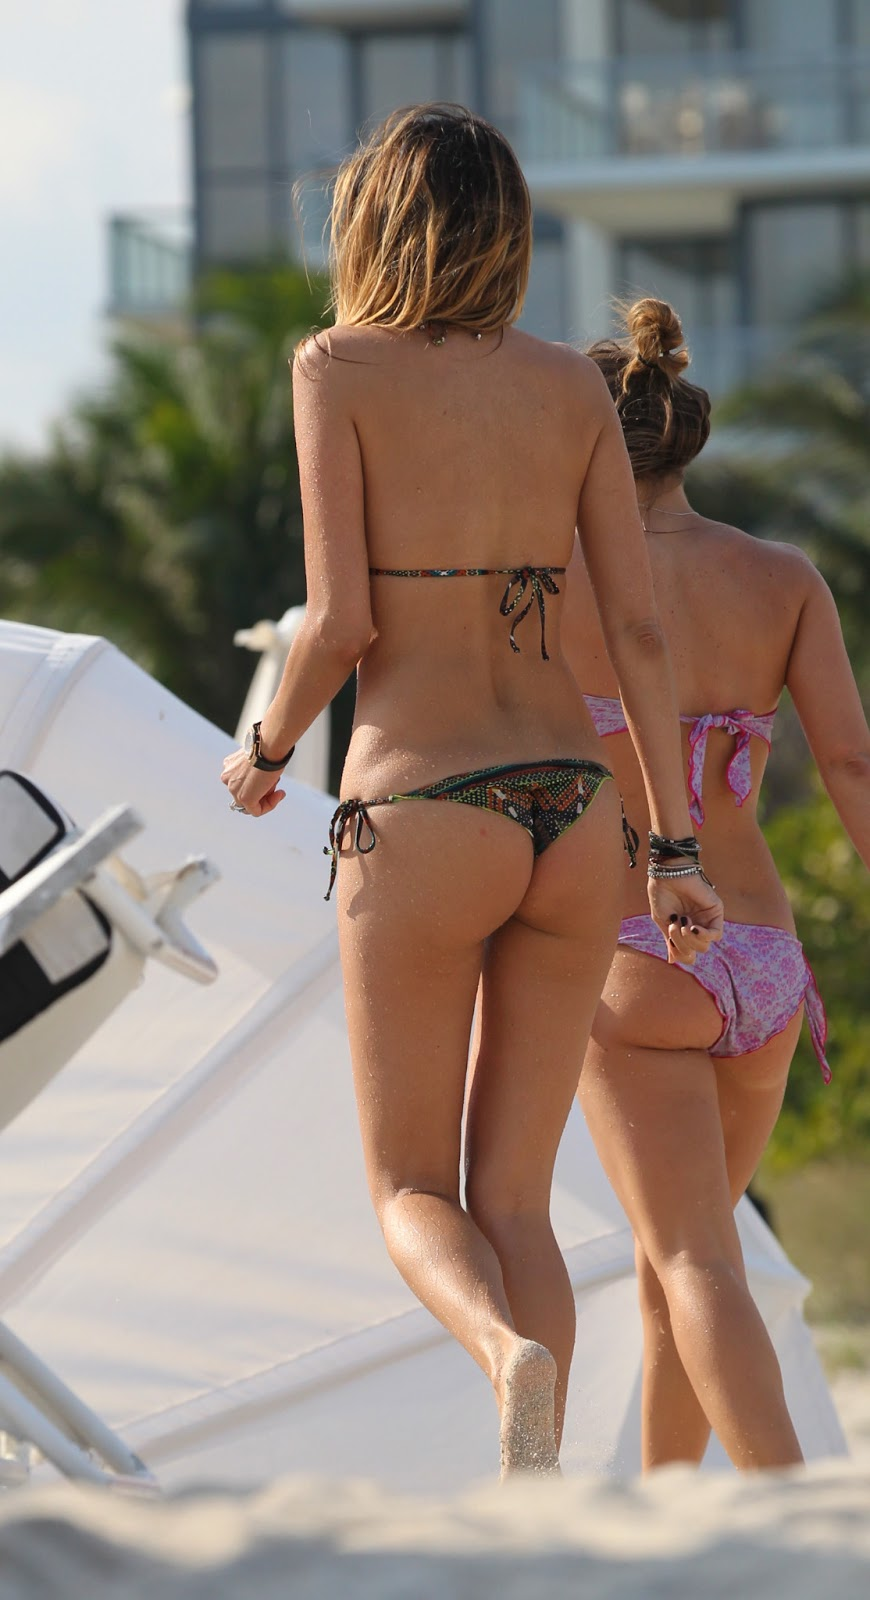 Hot Blog Post Aida Yespica Bikini Candids On The Beach In